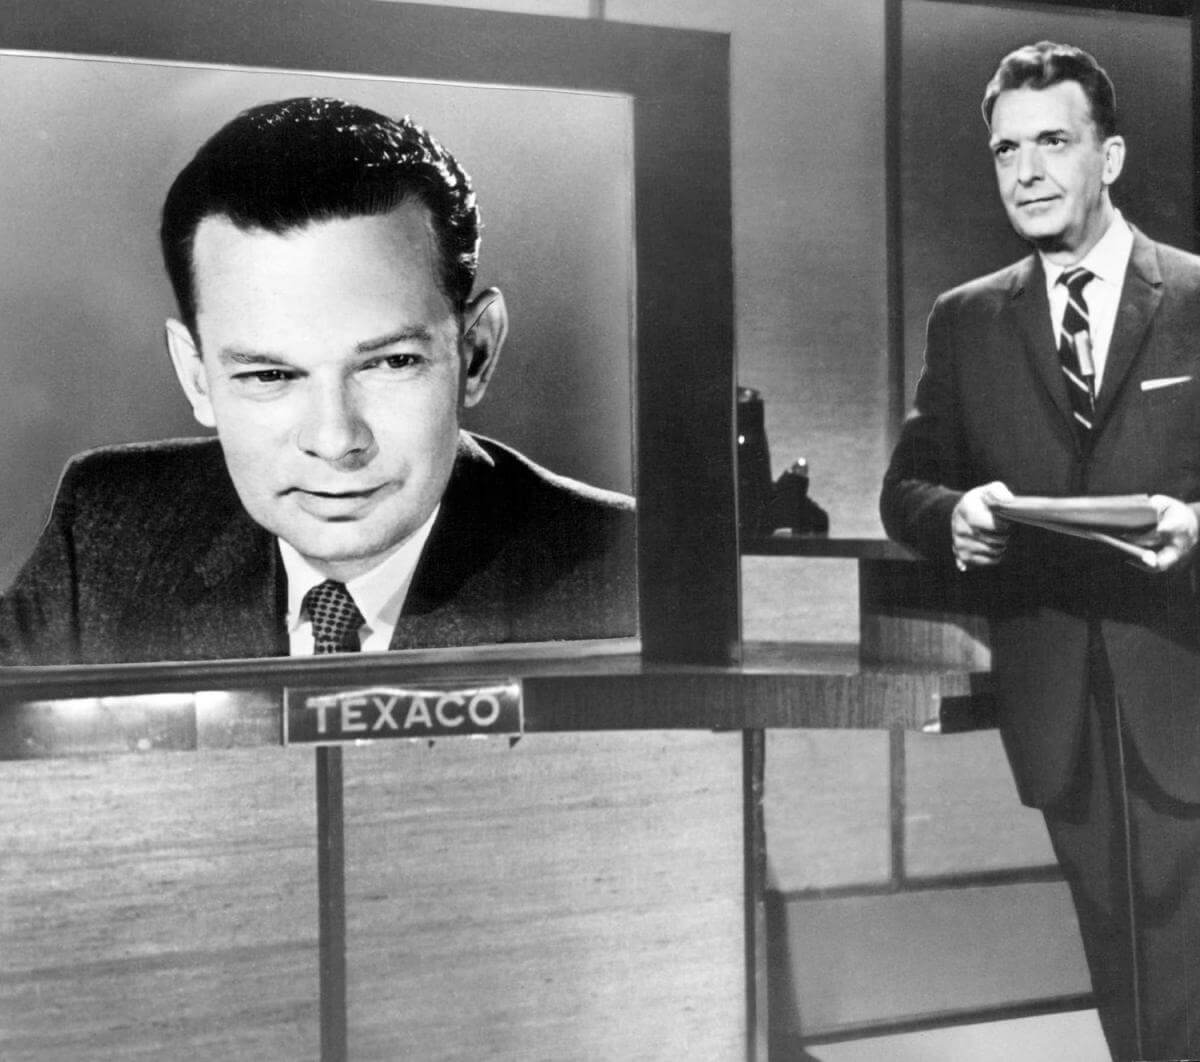 Photo of David Brinkley (on screen) and Chet Huntley from the news program The Huntley-Brinkley Report. Huntley was based in New York, while Brinkley was based in Washington. They shared the duties of the NBC Television Network evening news program from 1956 to 1970. Courtesy of Wikimedia Commons. Image is in the public domain.